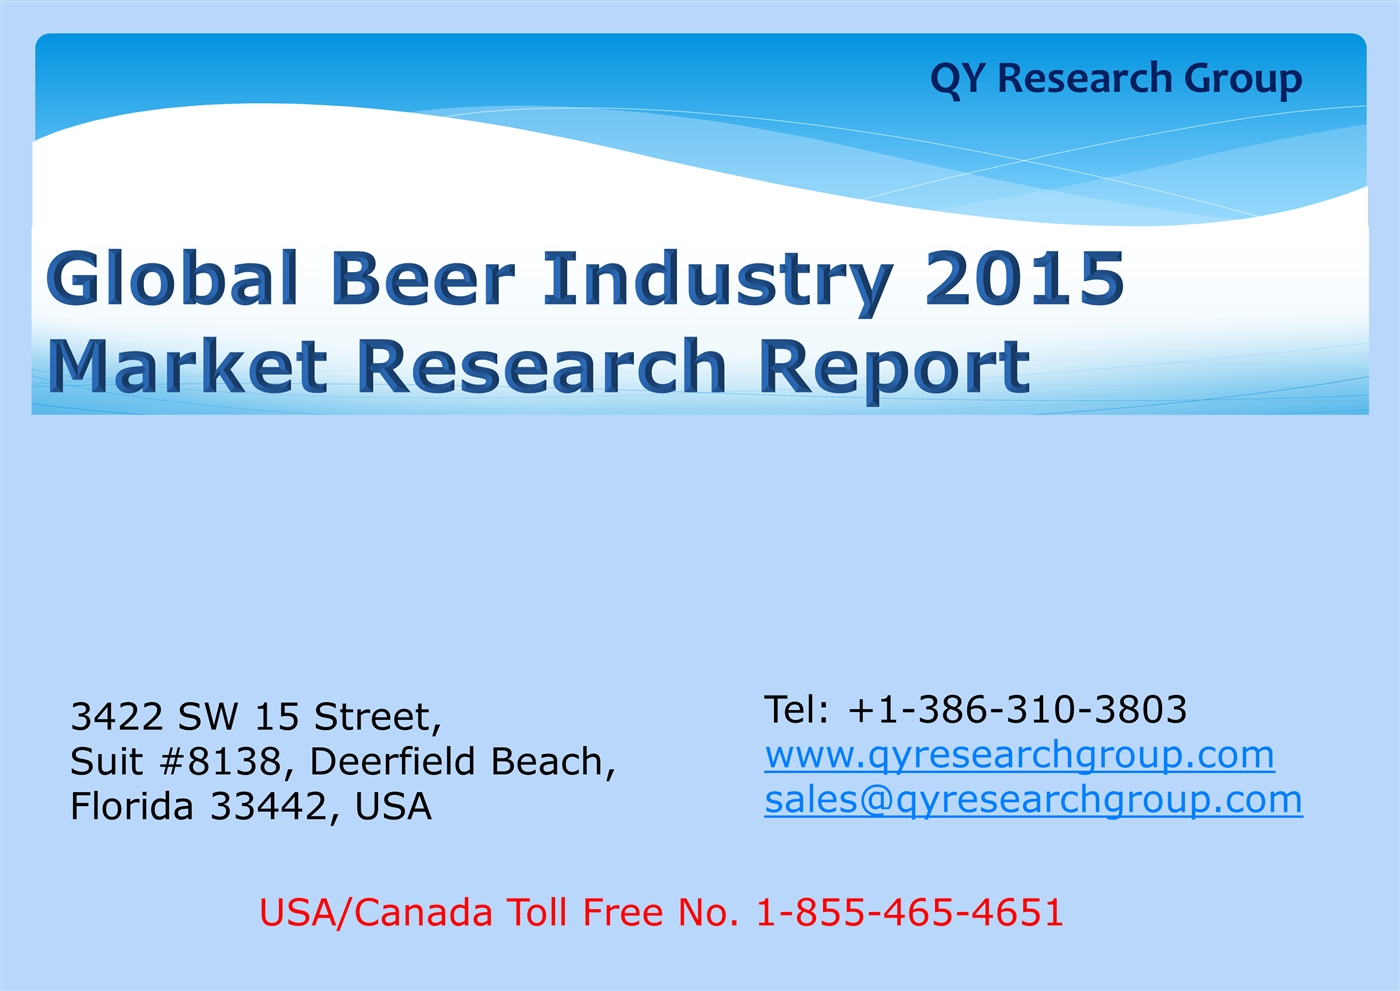 Global Beer Industry 2015 Market Research Report.pptx PowerPoint ...